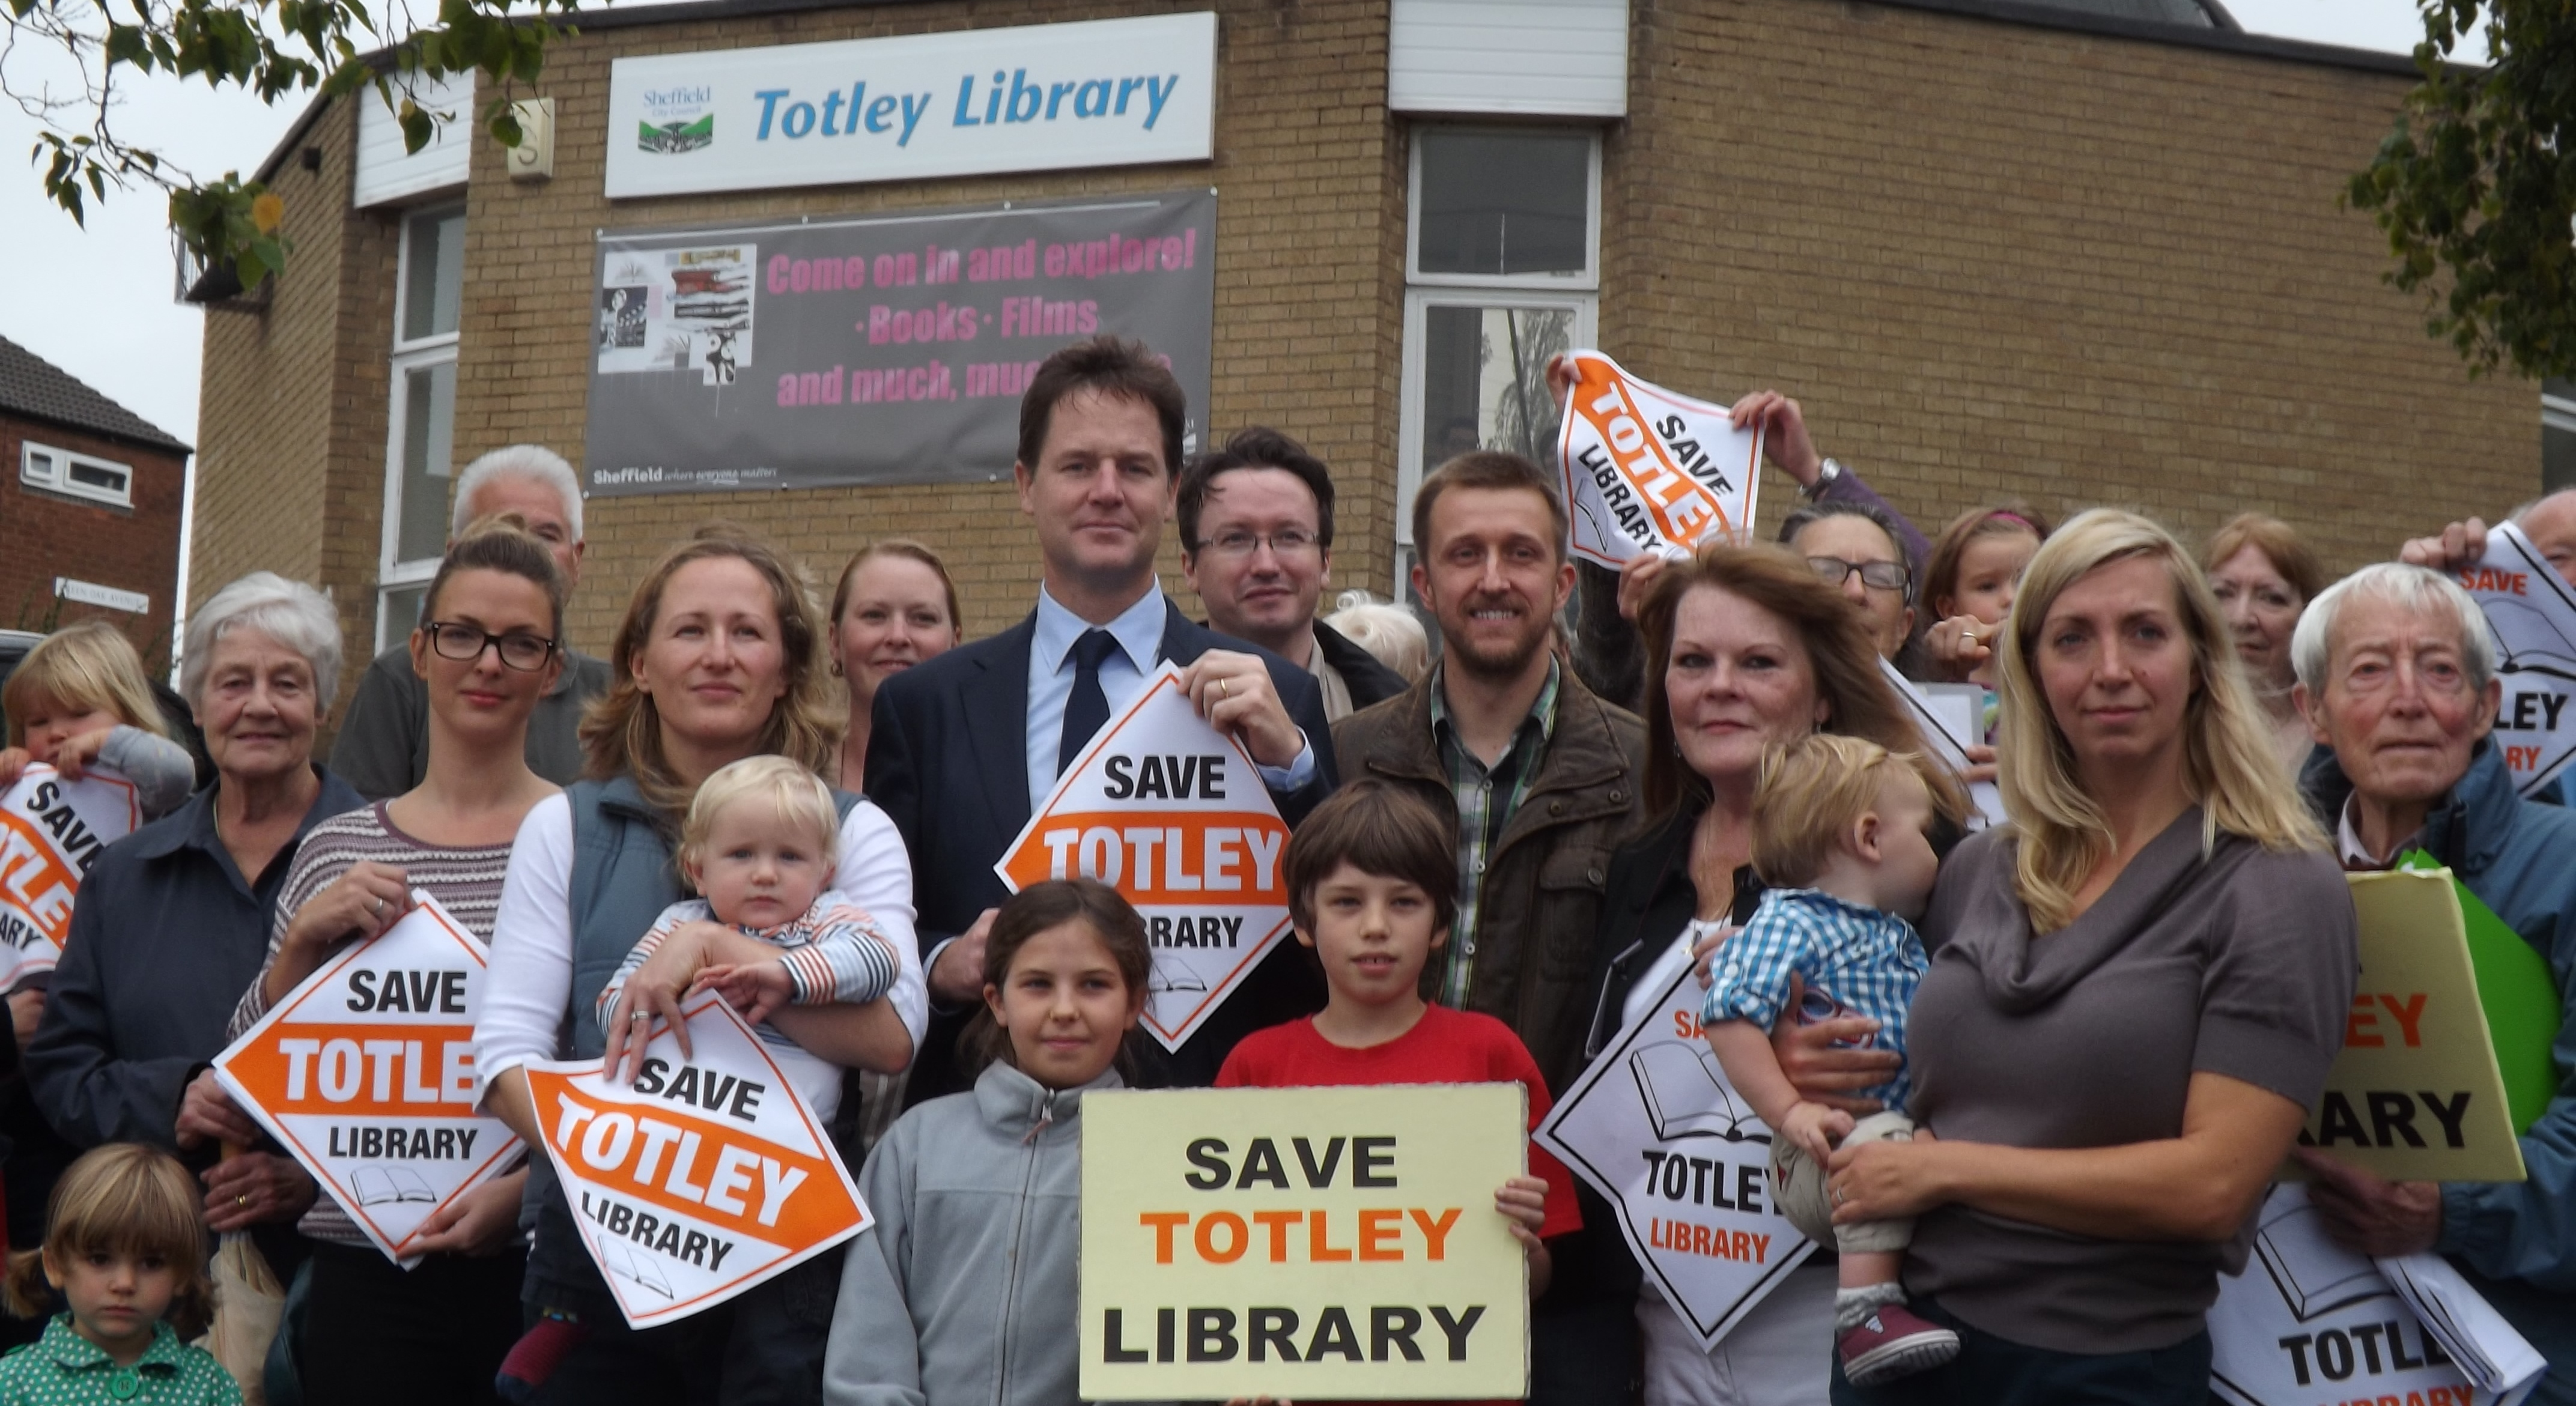 Libraries saved, but they still need our help to stay open